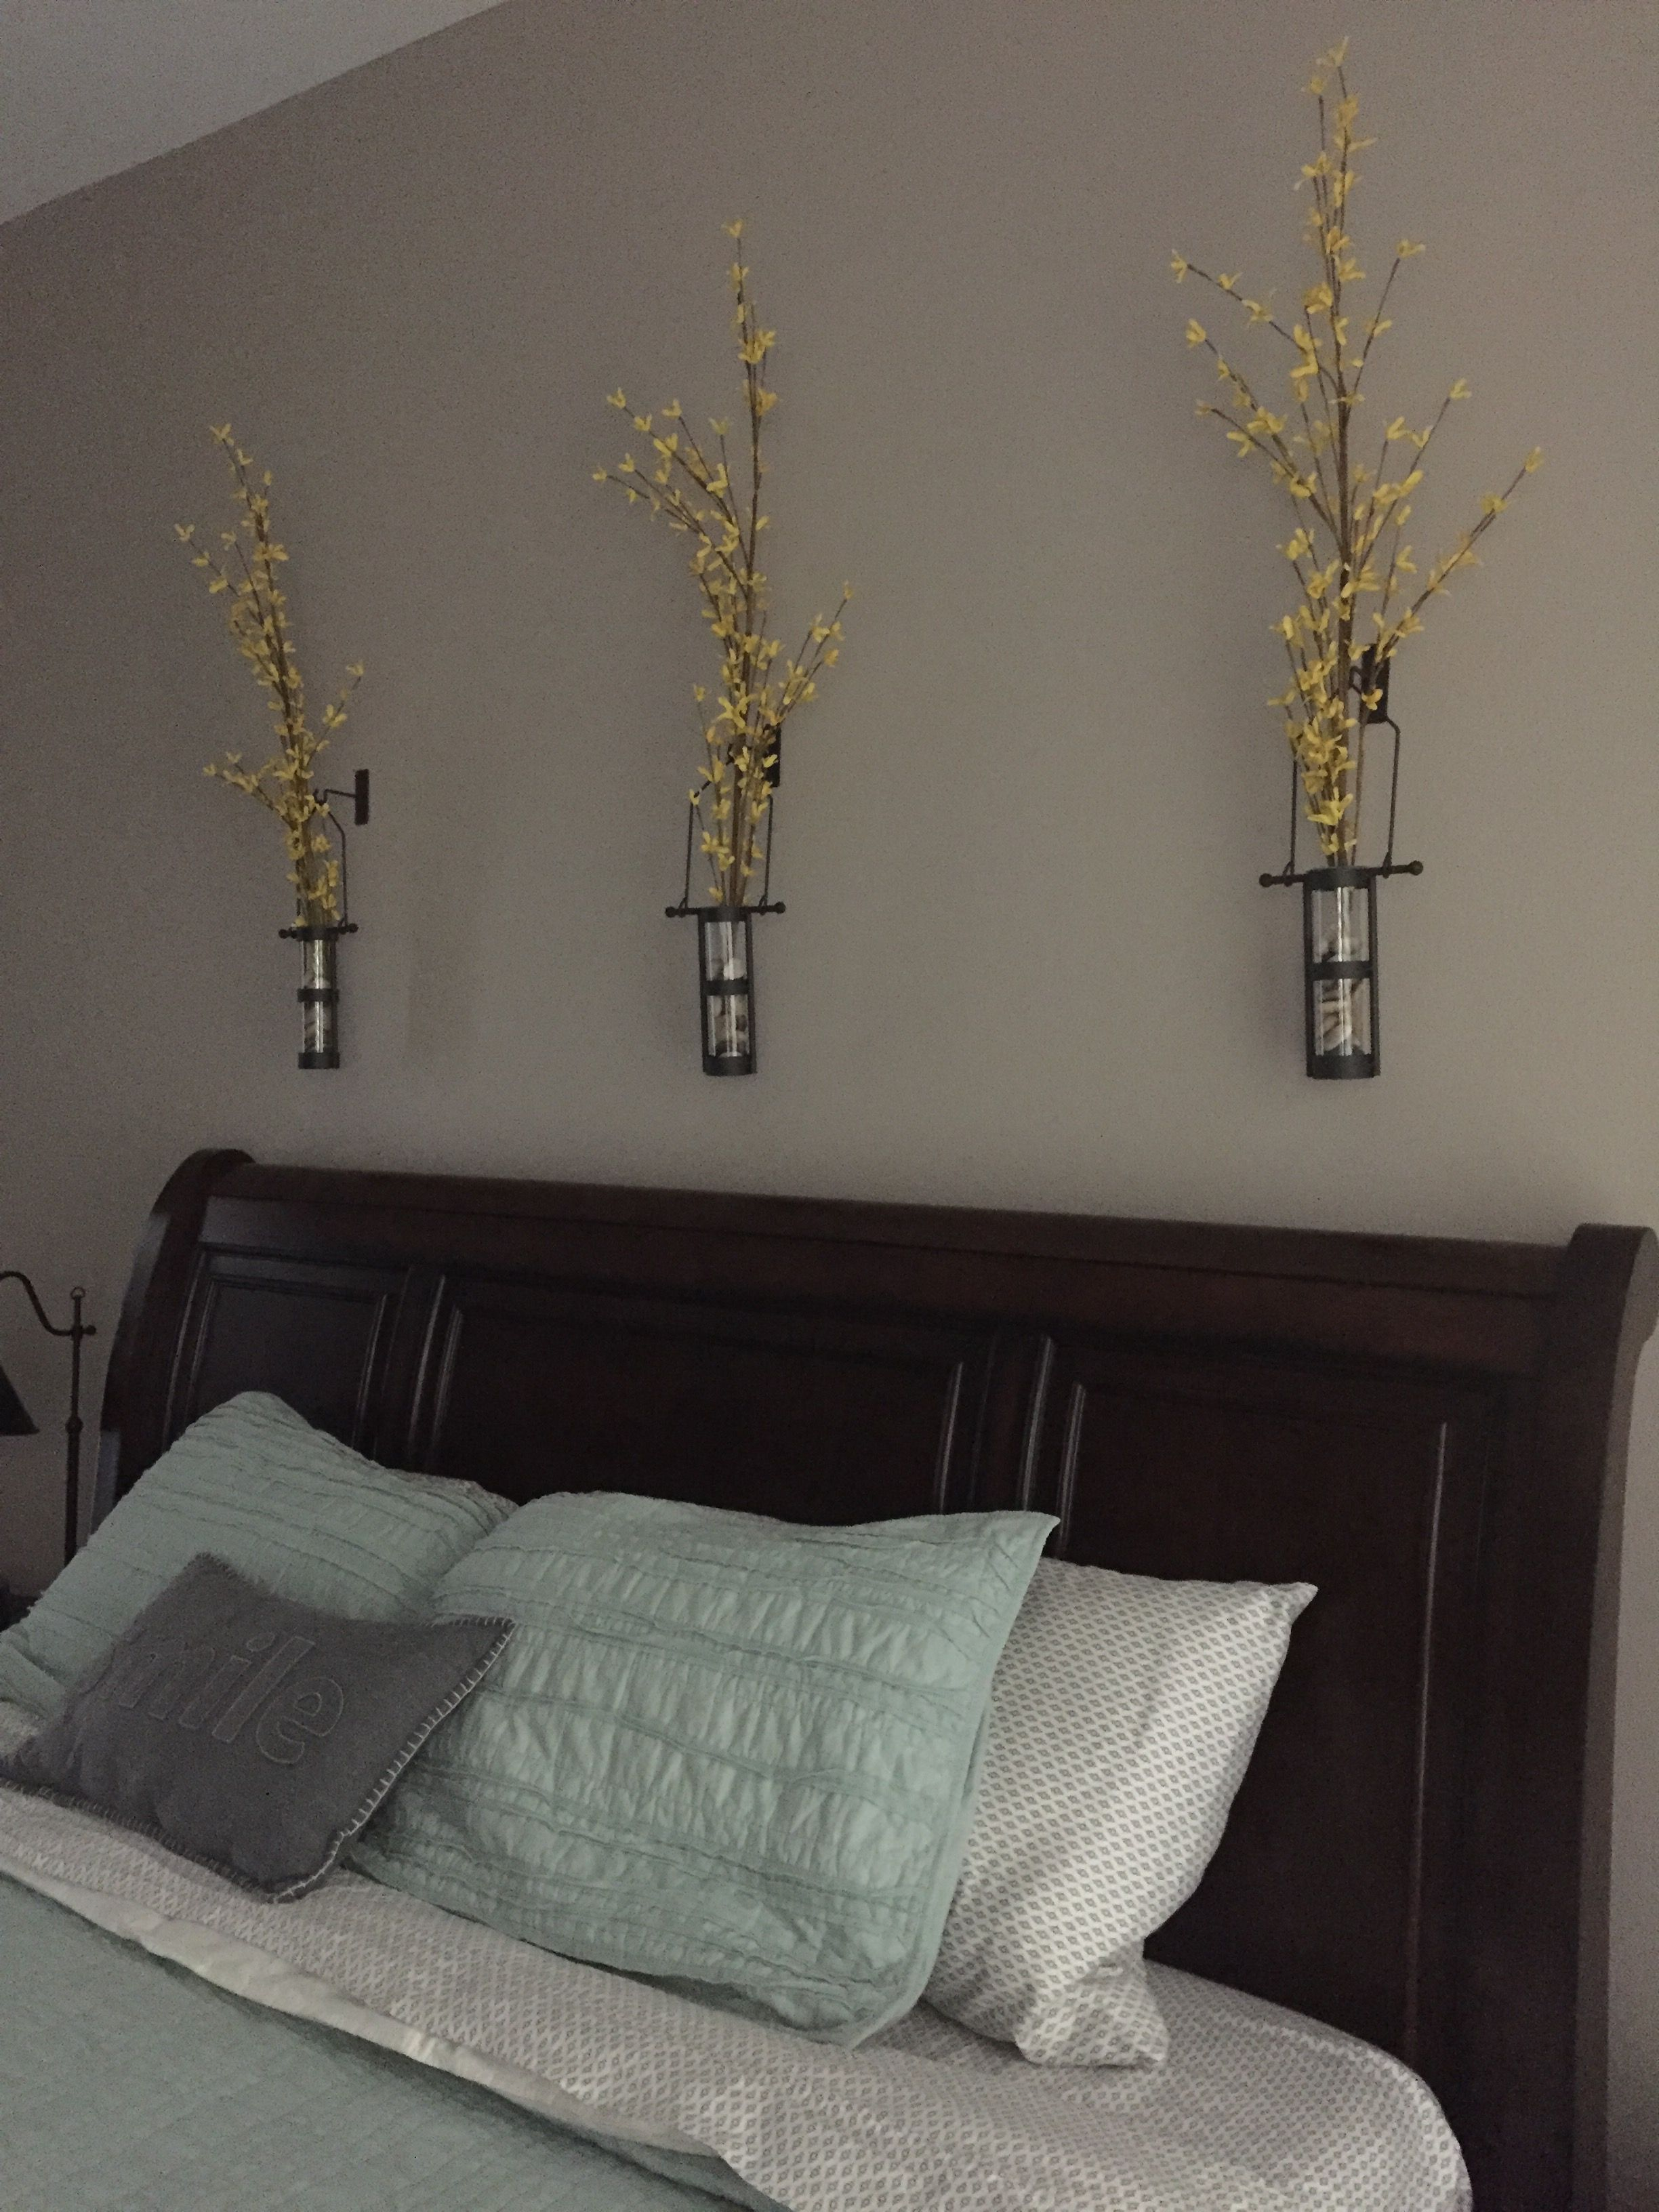 Glass Wall Vases Bedroom Decor Yellow Flowers From Hobby Lobby Wall Vases From Wayfair Http Www Wayfair Com Metal Tree Wall Art Wall Vase Decor Bed Decor